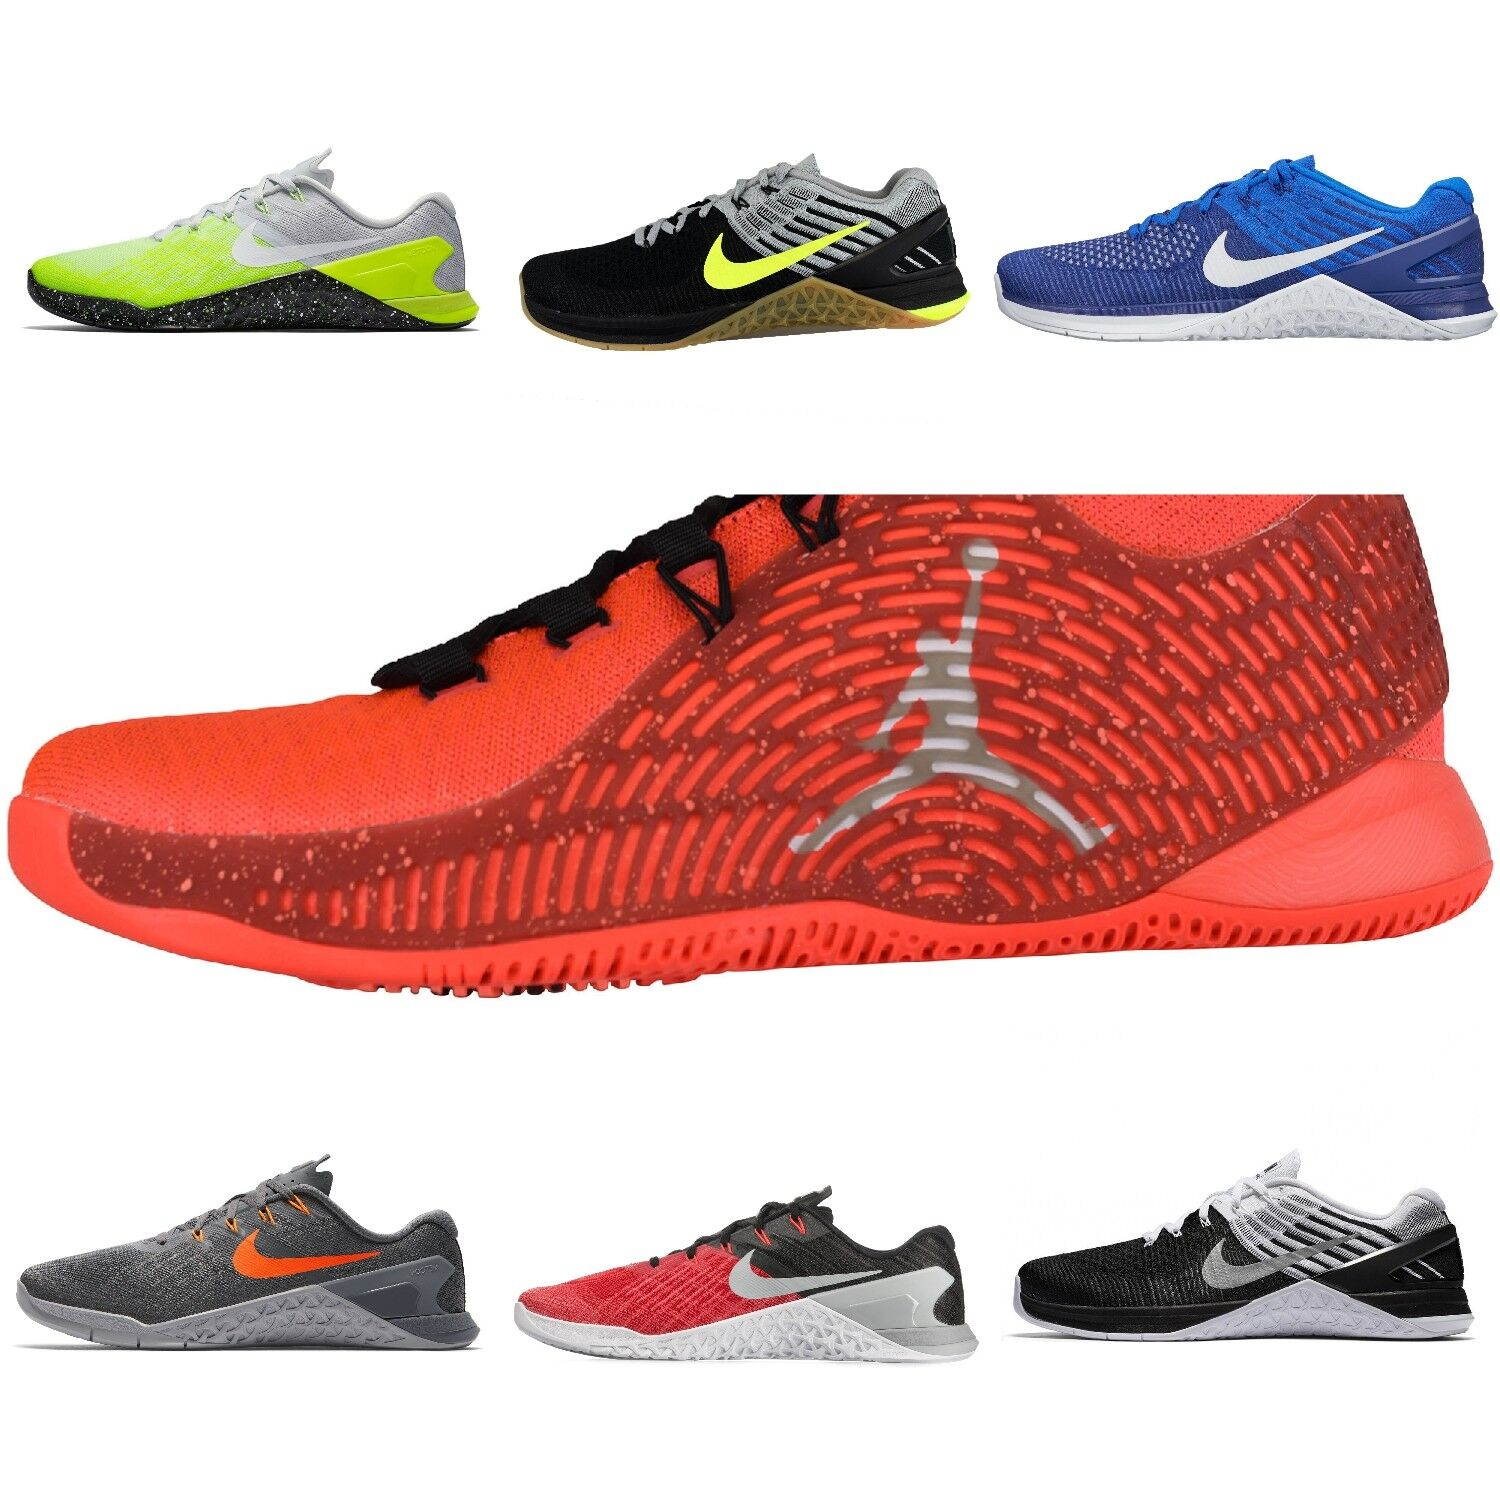 Nike Metcon 3 DSX Flyknit Laufschuh Sportschuh Turnschuh Sneaker Textil The latest discount shoes for men and women